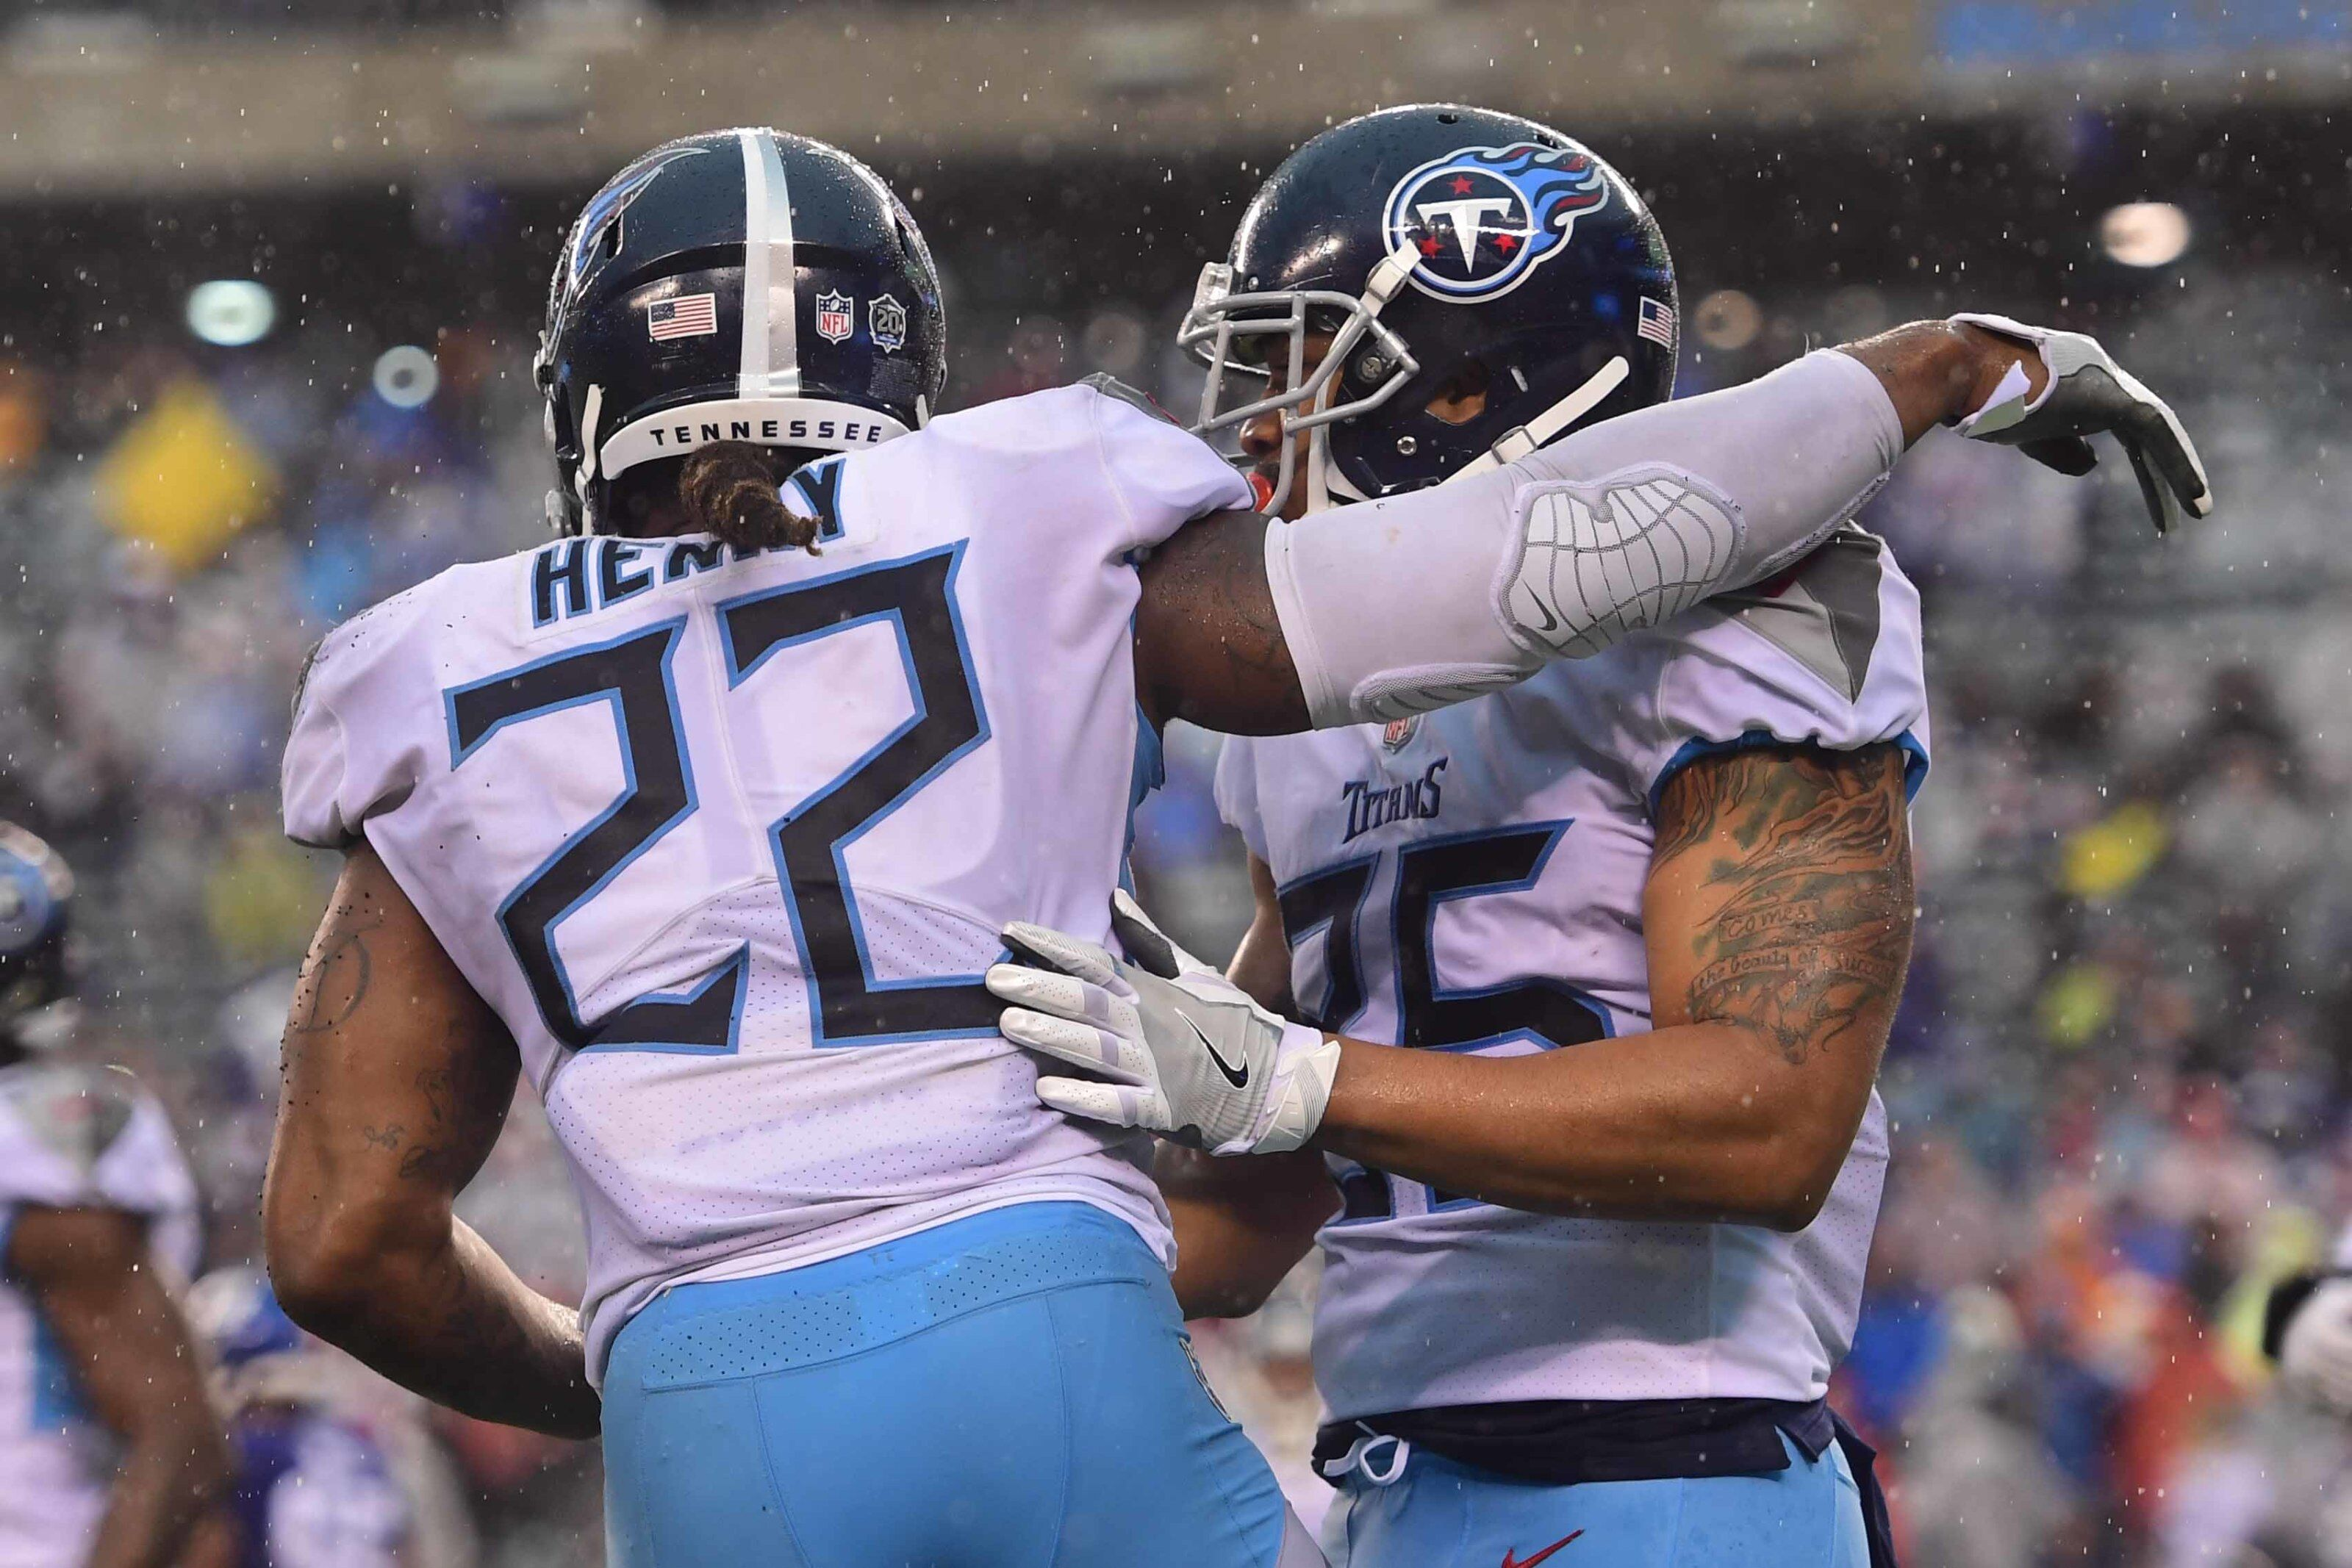 NFL talent power rankings, where do Tennessee Titans land